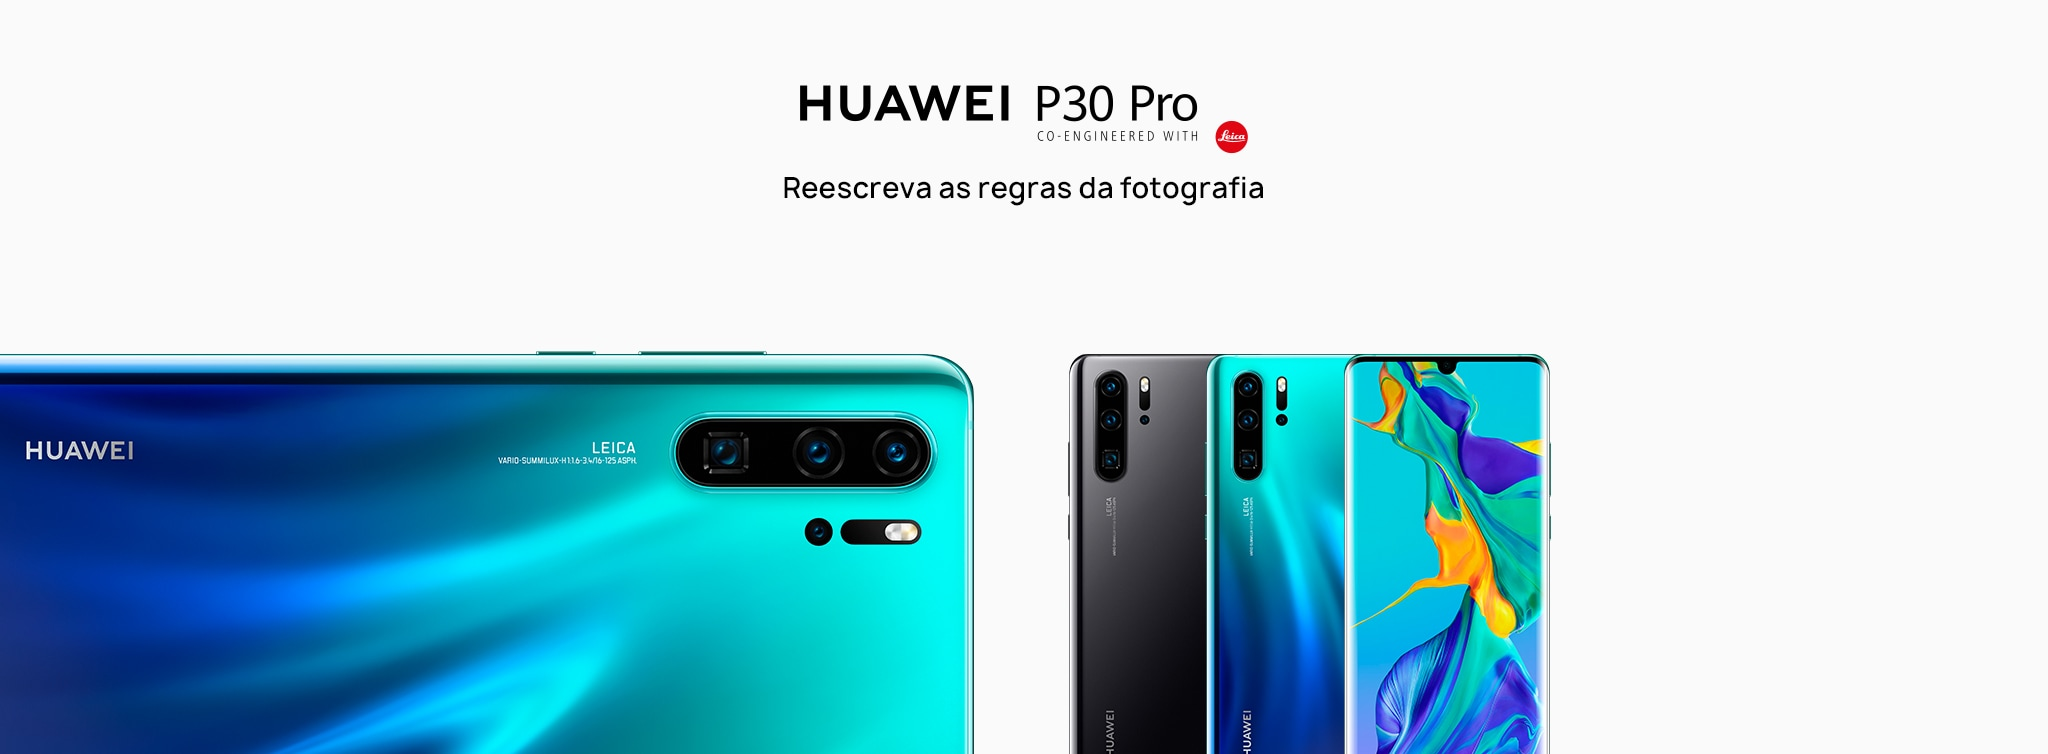 Huawei Brasil - Building a Fully Connected, Intelligent World